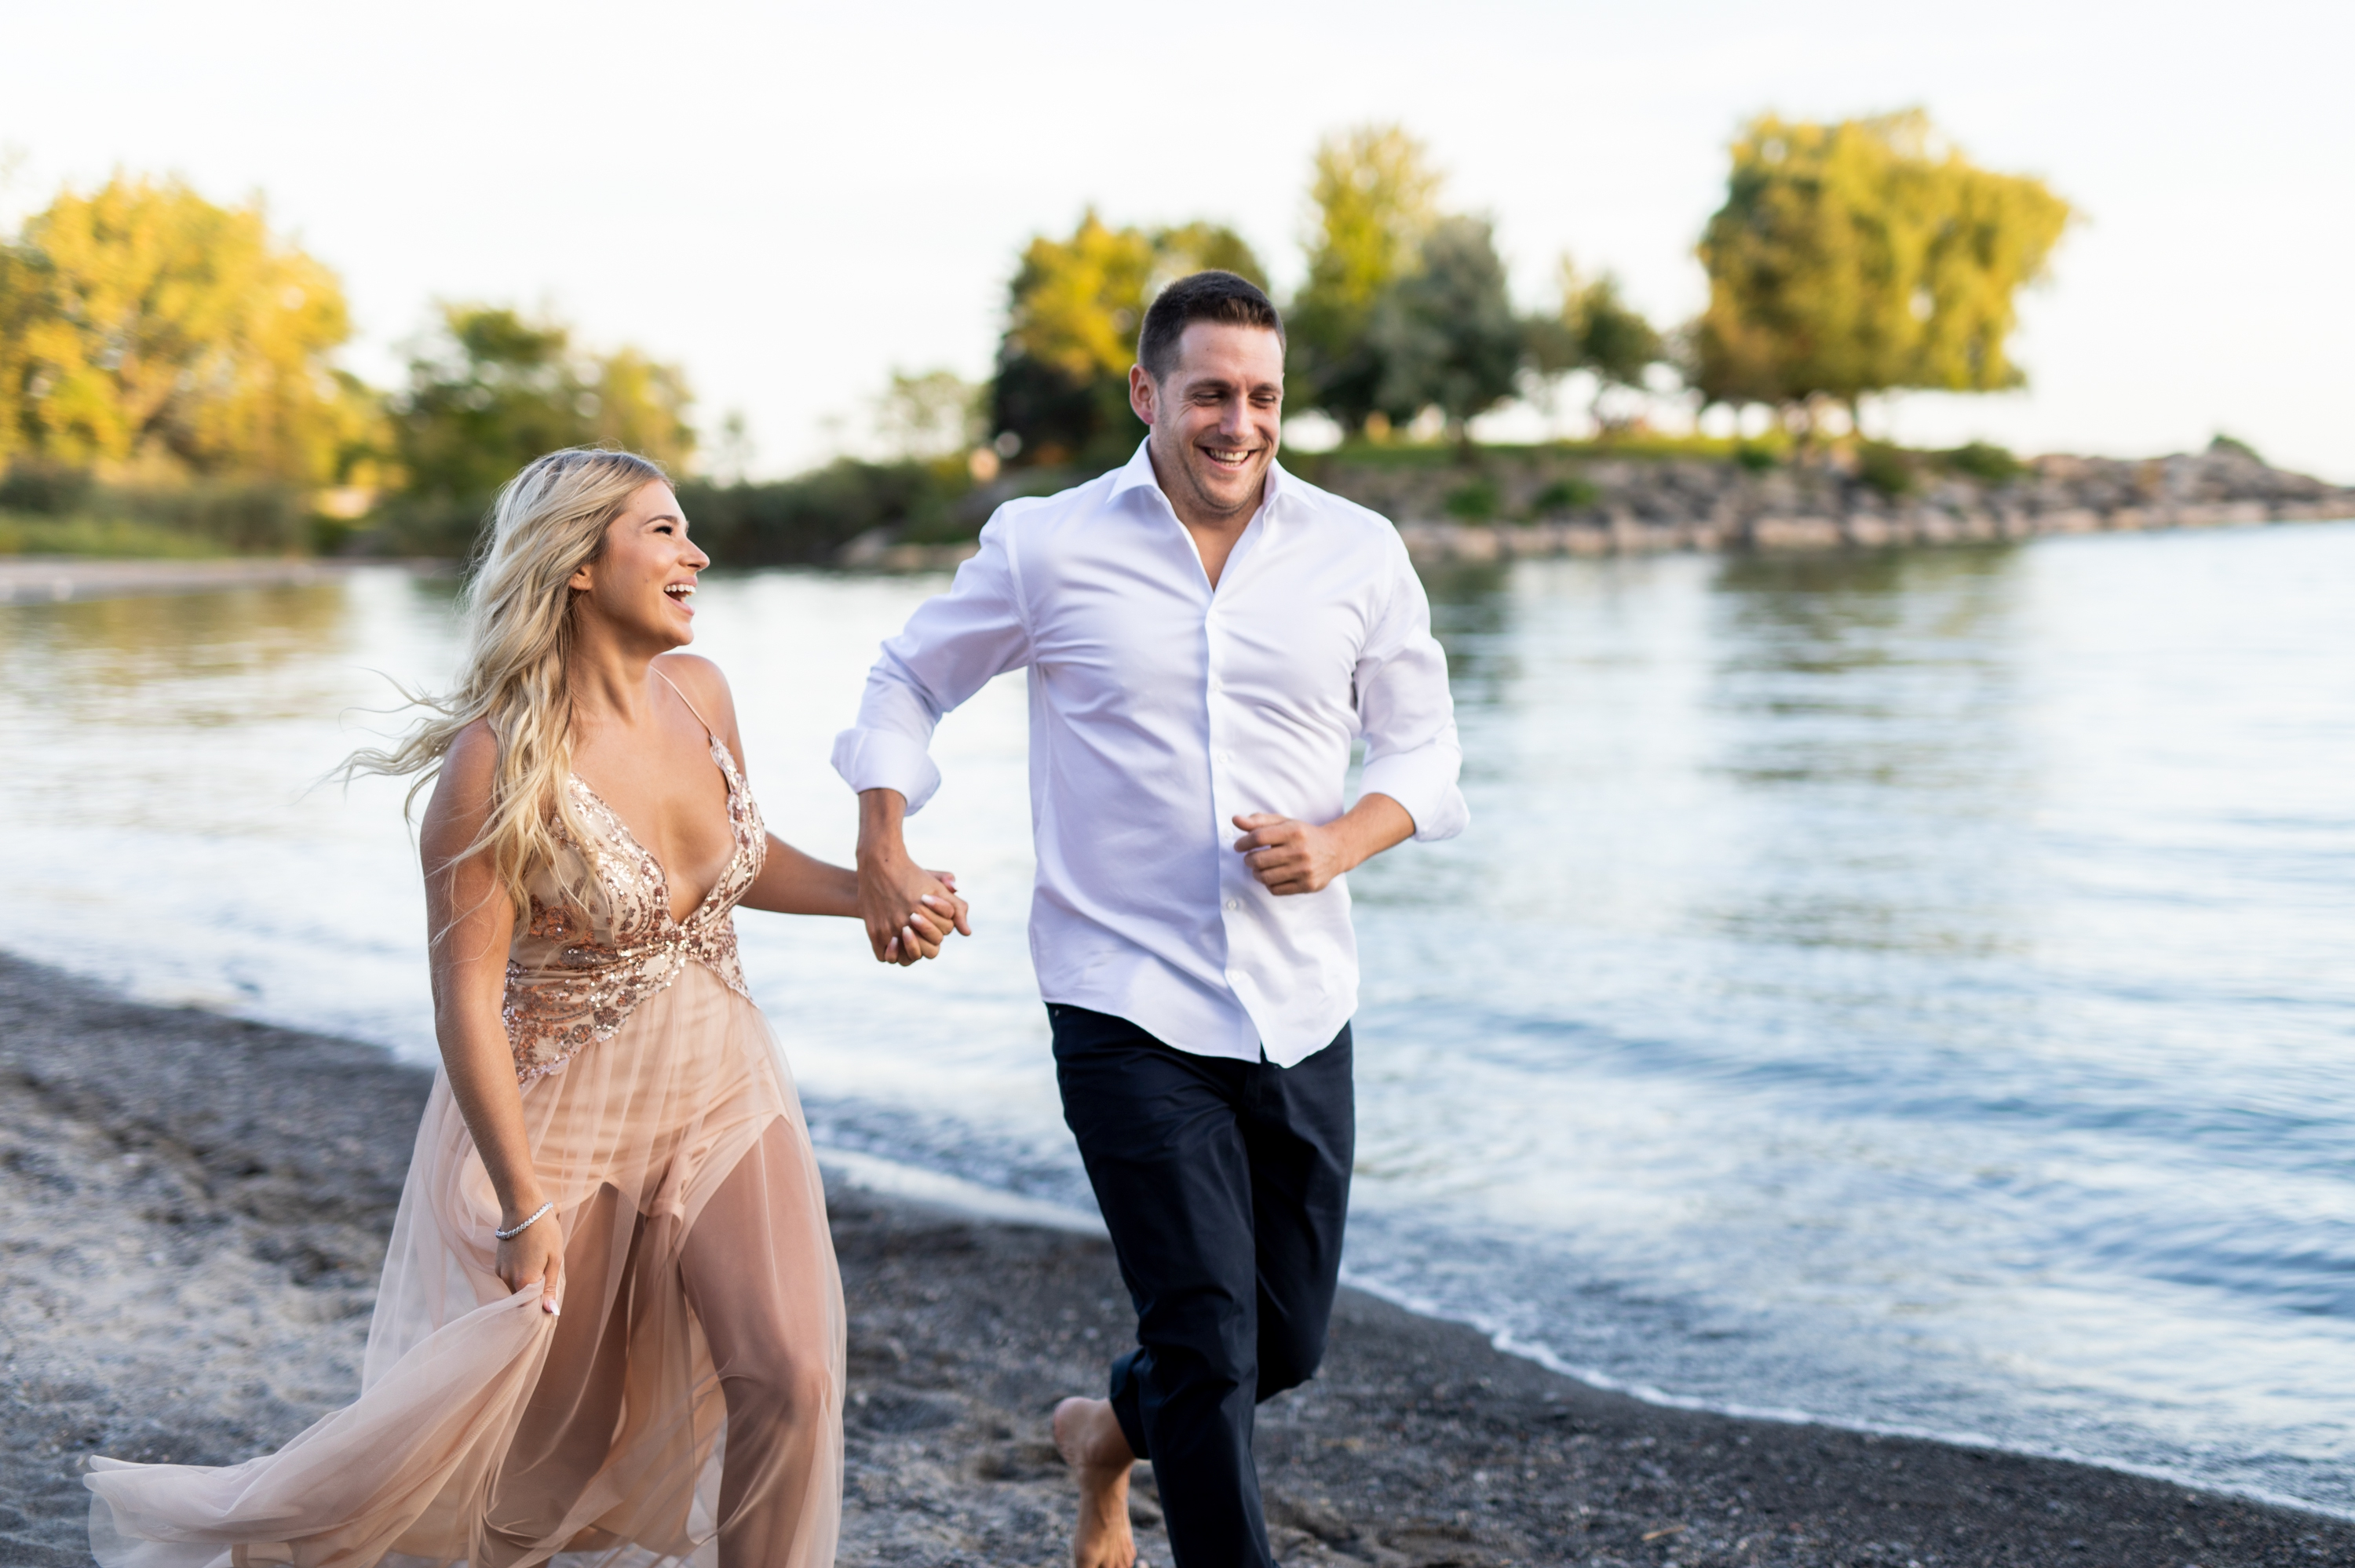 Zsuzsi Pal Photography, Guild Inn, Scarborough Bluffs, Engagement, Toronto, Bride Groom